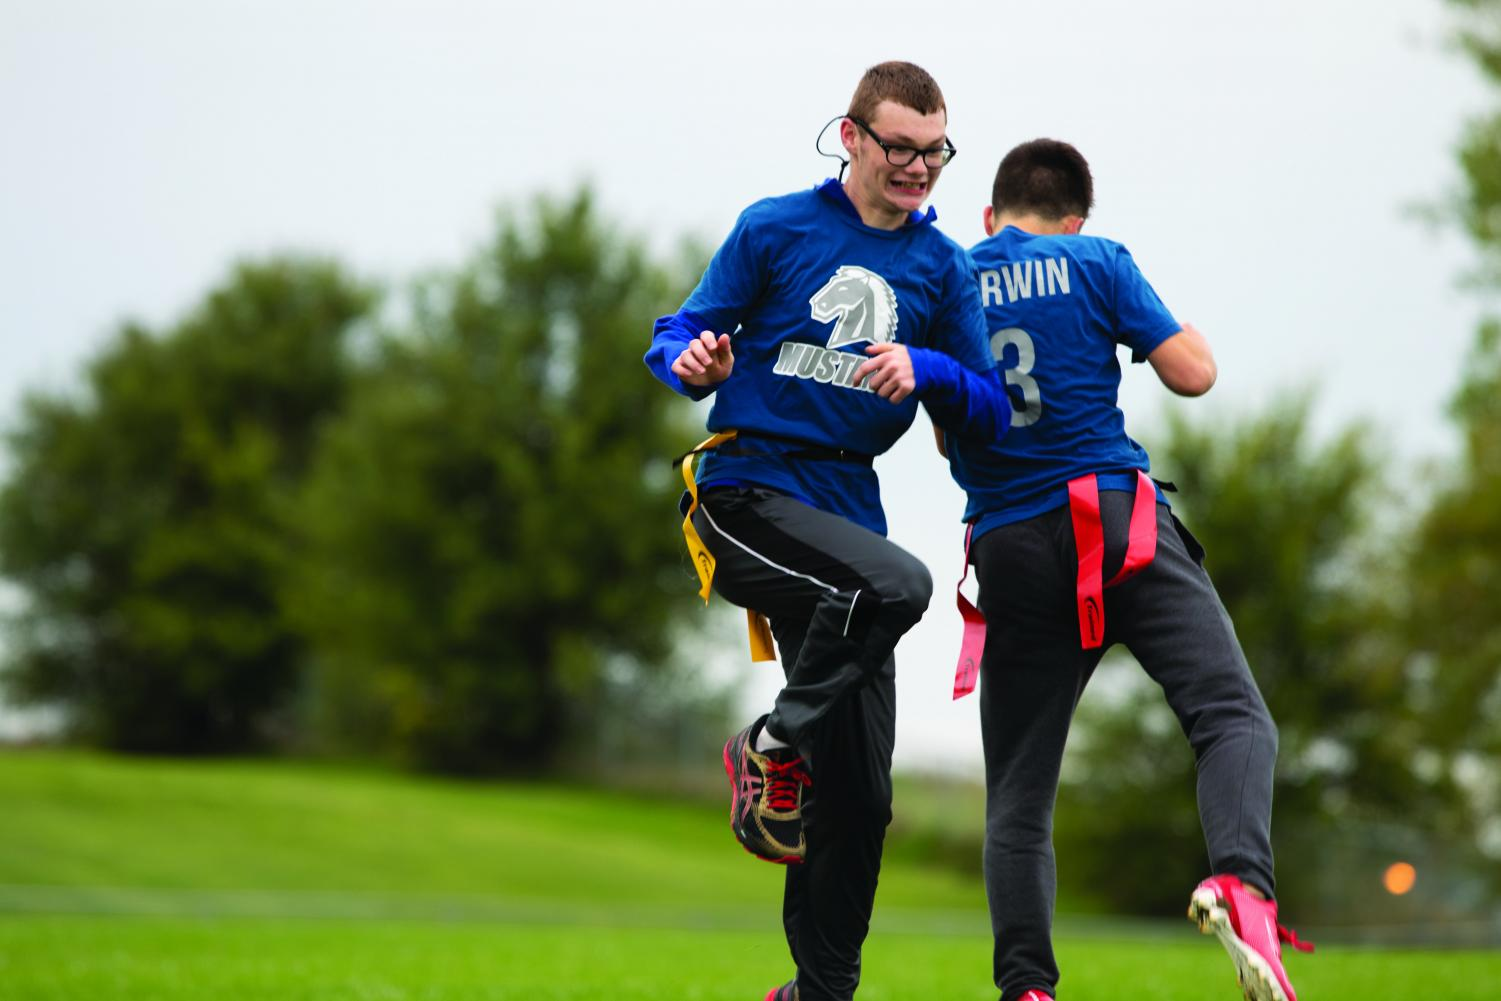 Sophomore Ryan Rauert and and 2019 graduate Zach Corwin congratulate each other on their team's touchdown. The MN Unified Flag Football team